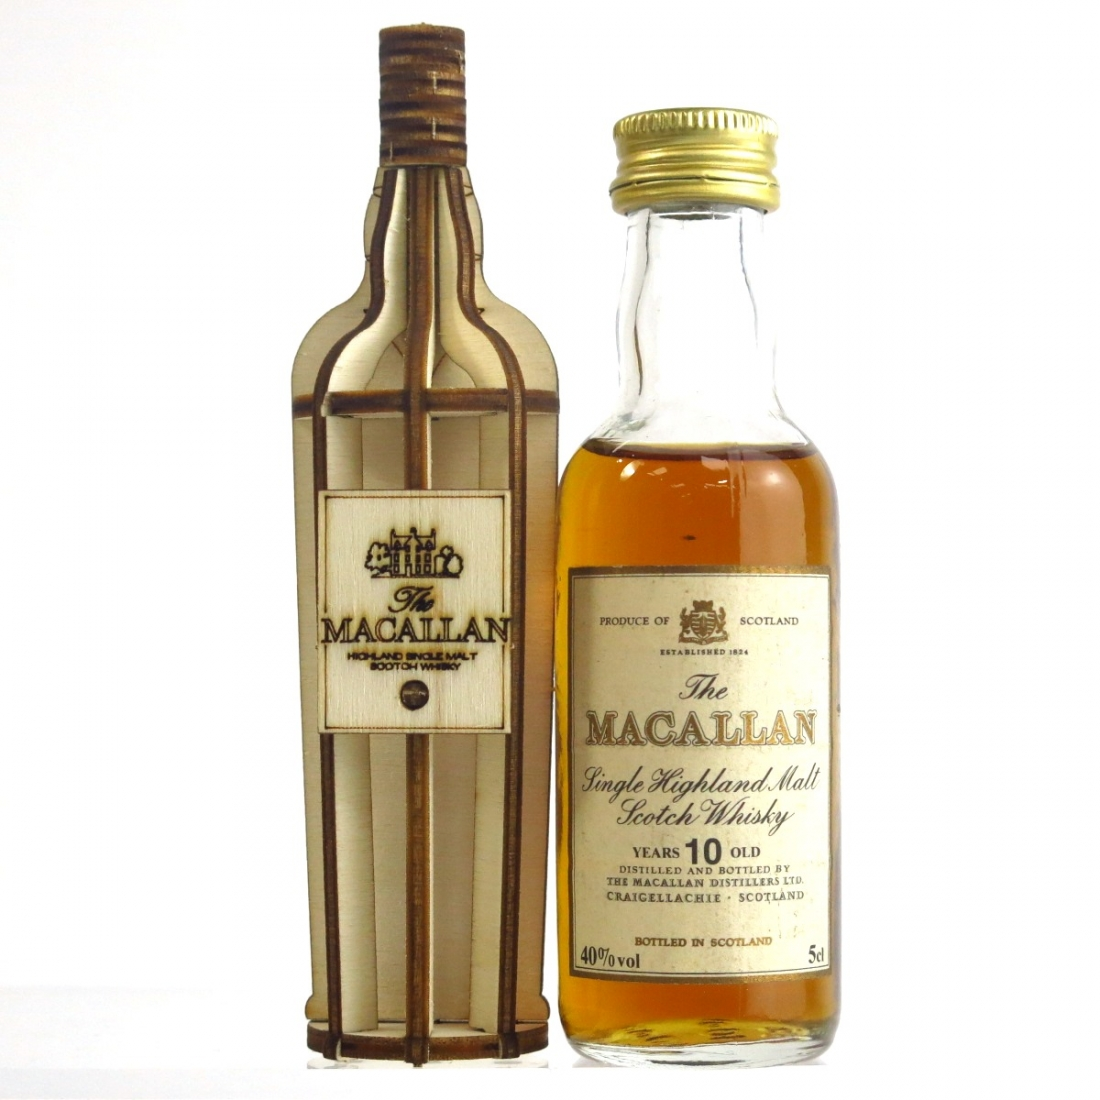 Macallan 10 Year Old Miniature 5cl and Popup Design Bottle